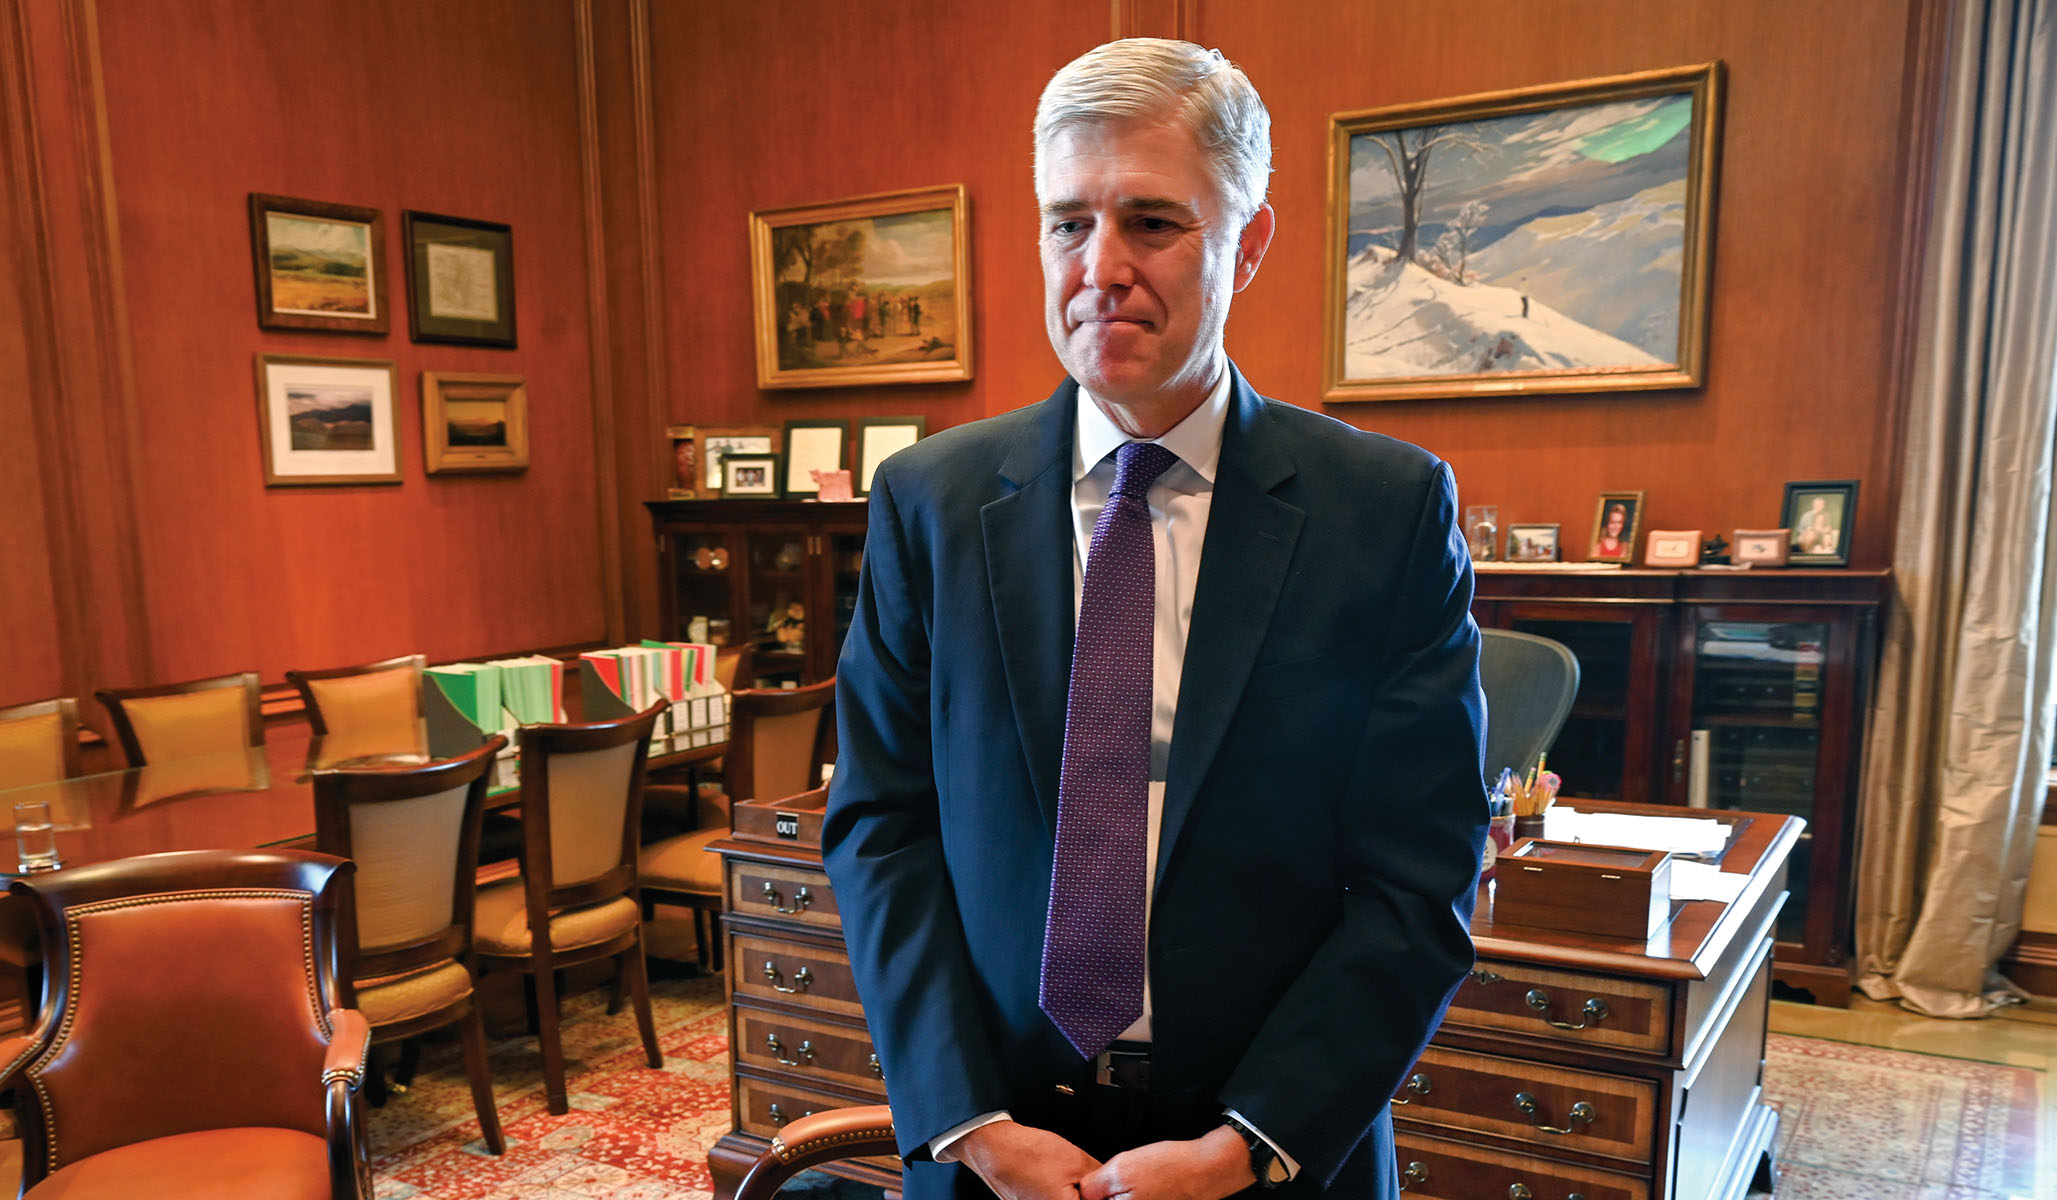 A Conversation with Justice Neil Gorsuch